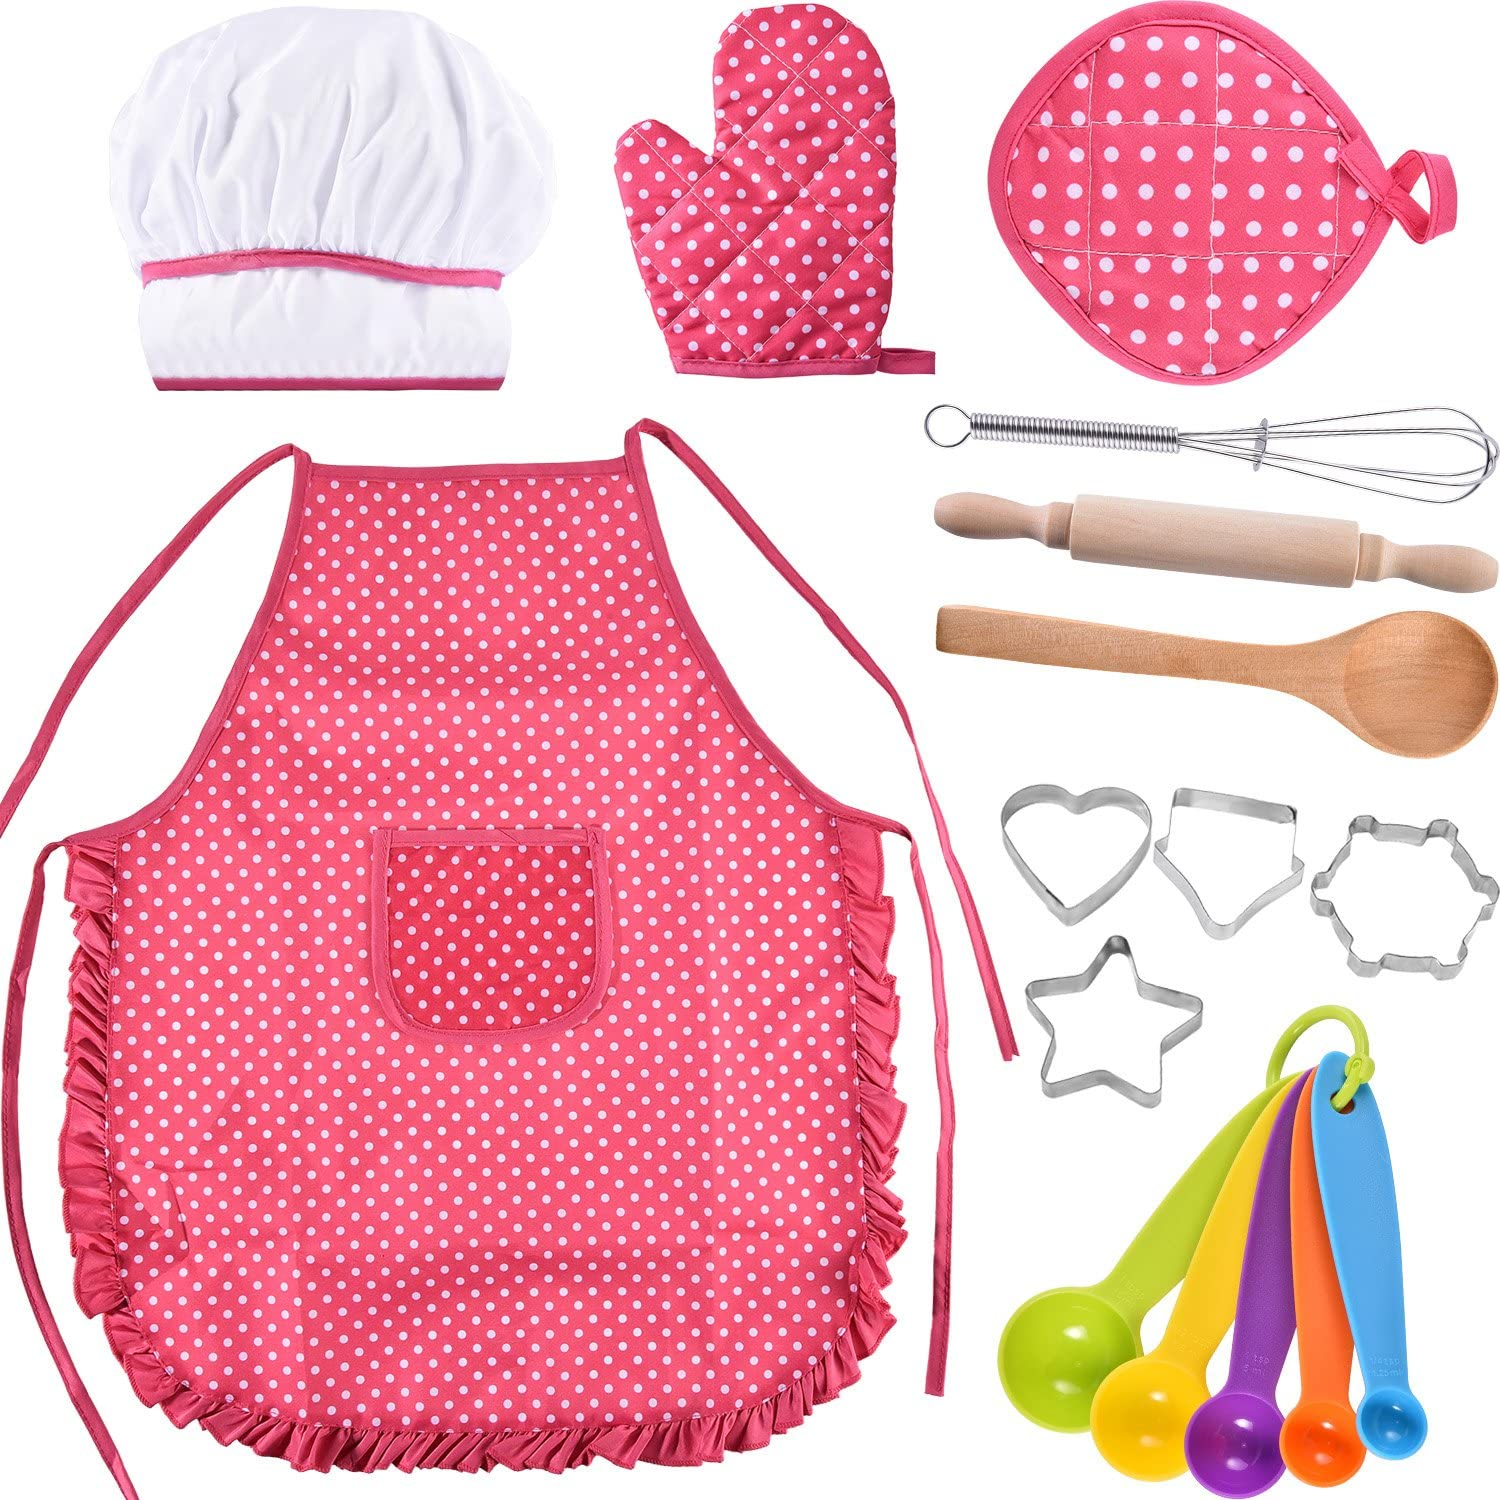 Bememo Kids Chef Set Children Cooking Play Kids Cook Costume with Utensils for Girls Children's Day Gift, 16 Pieces (Pink)